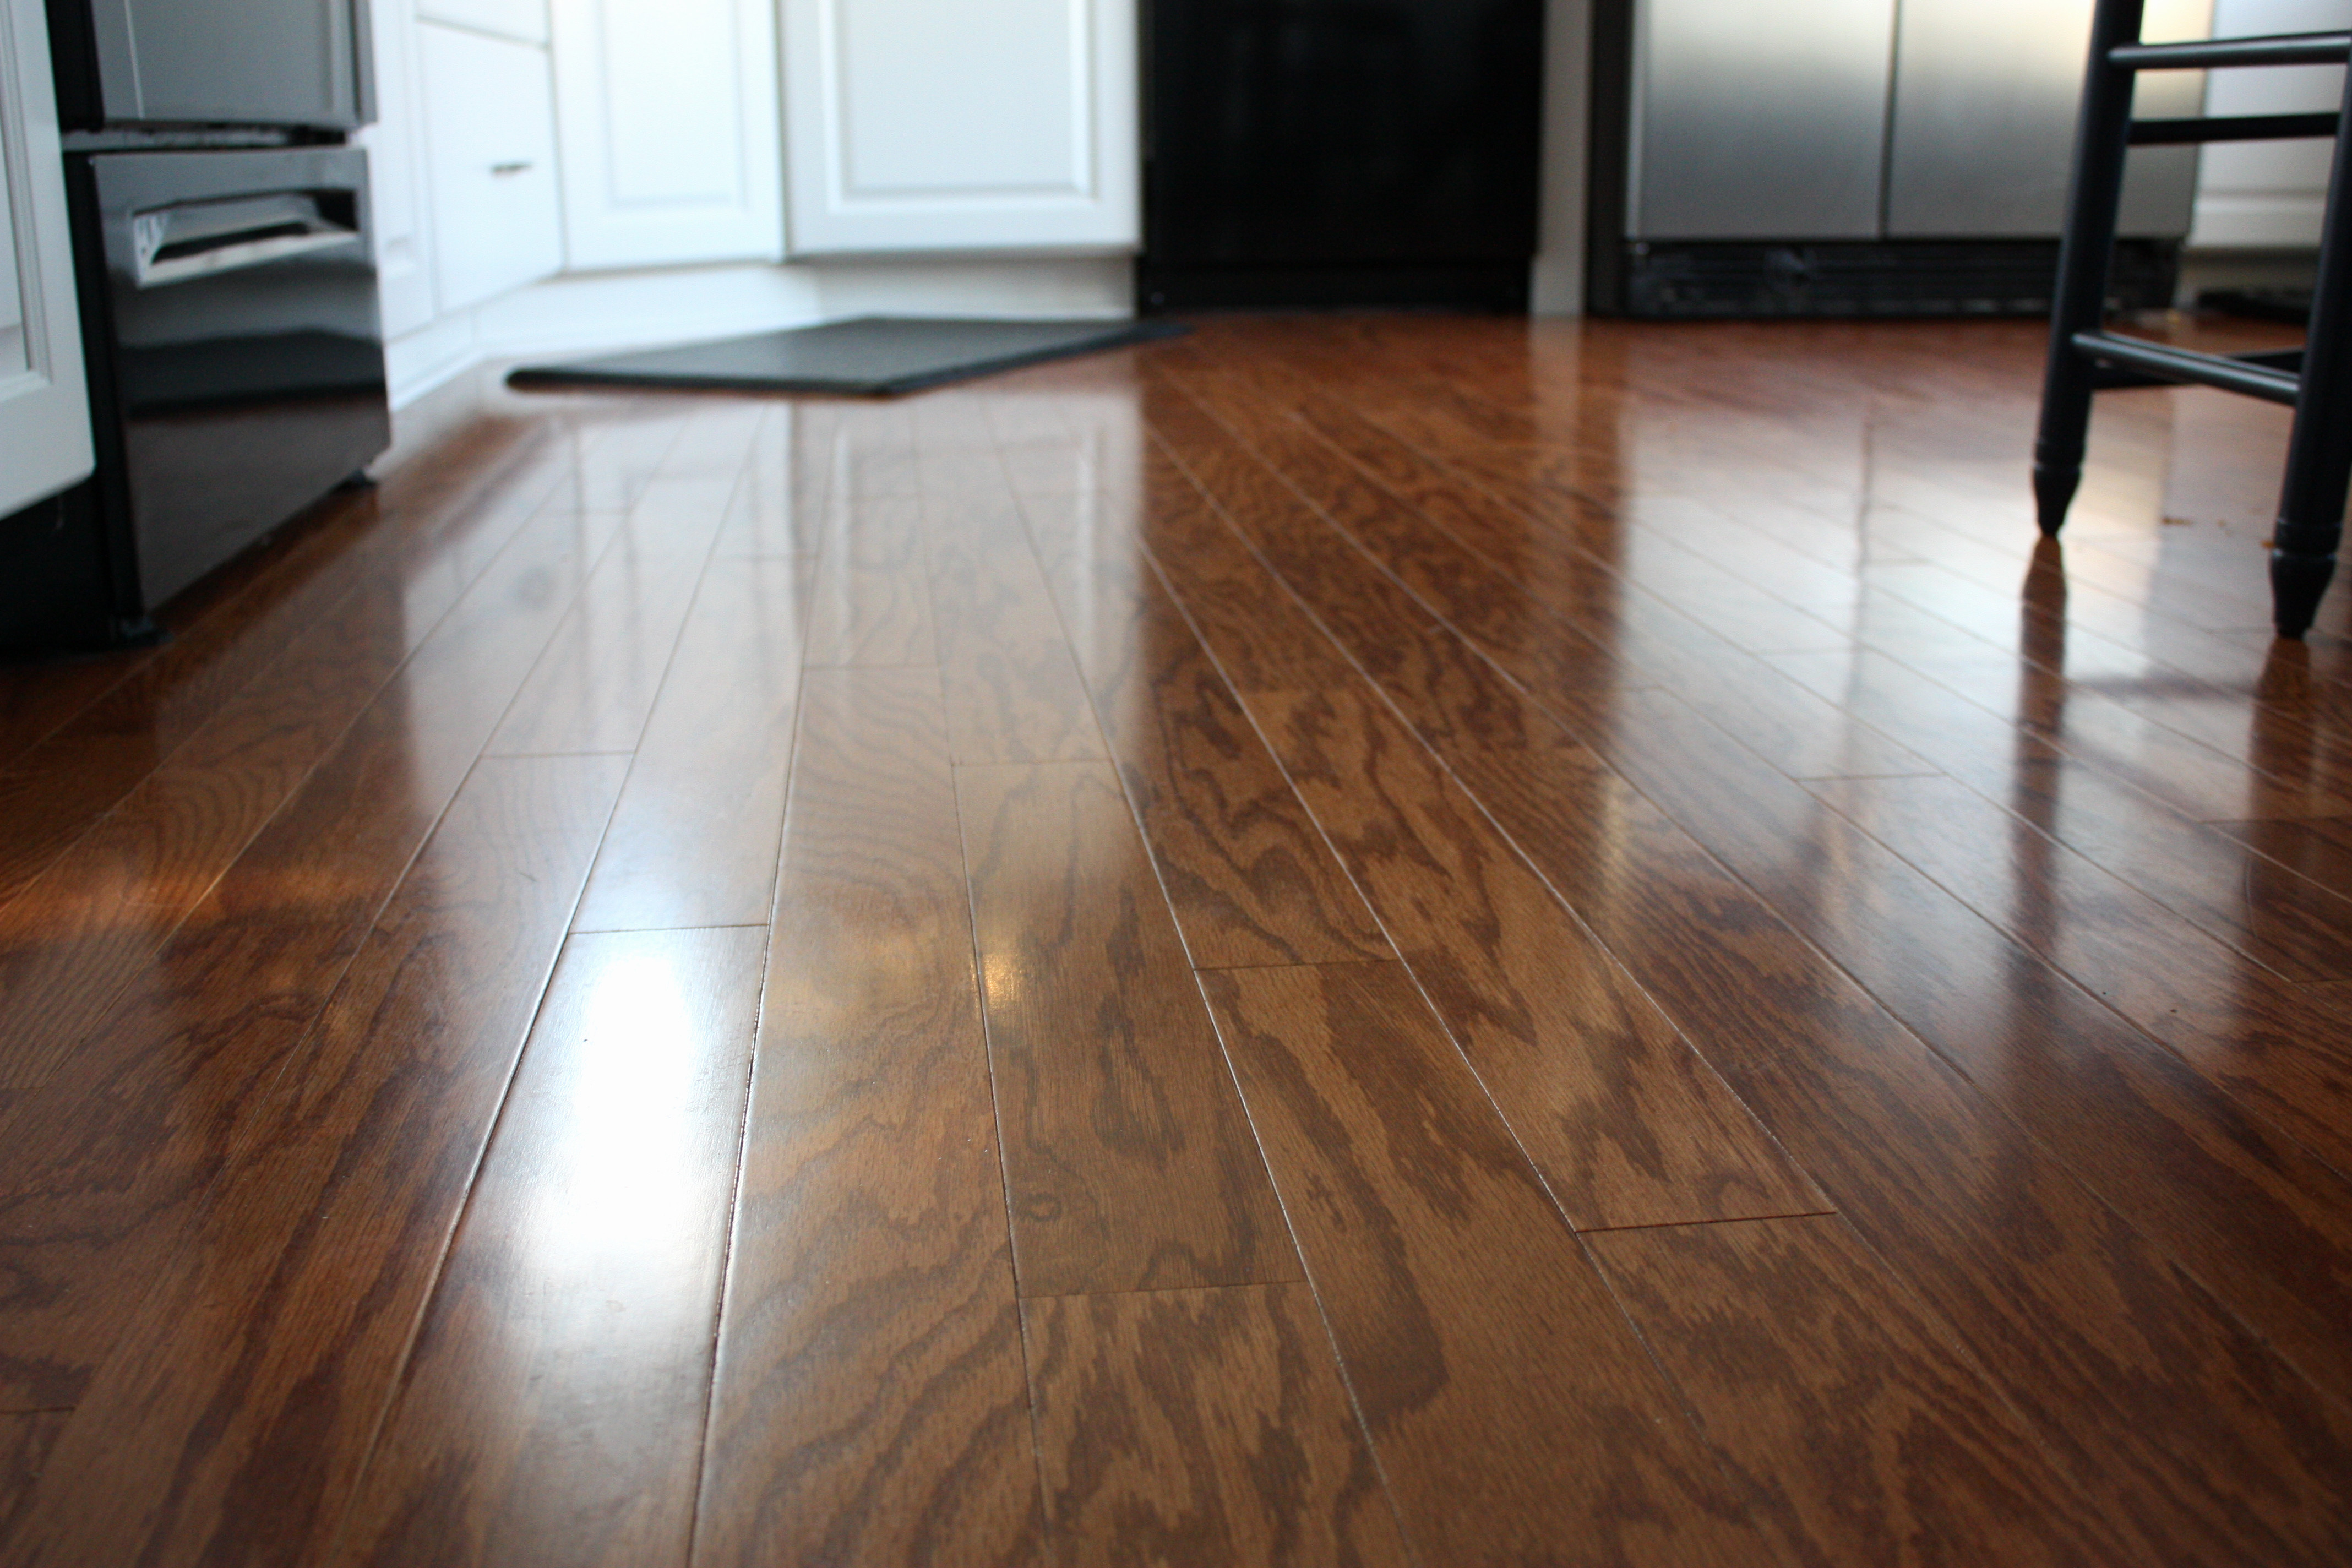 acacia hardwood flooring lowes of the wood maker page 6 wood wallpaper for floor floorod cleaning hardwood carpet lake forest il rare image ideas of wood floor steam cleaner